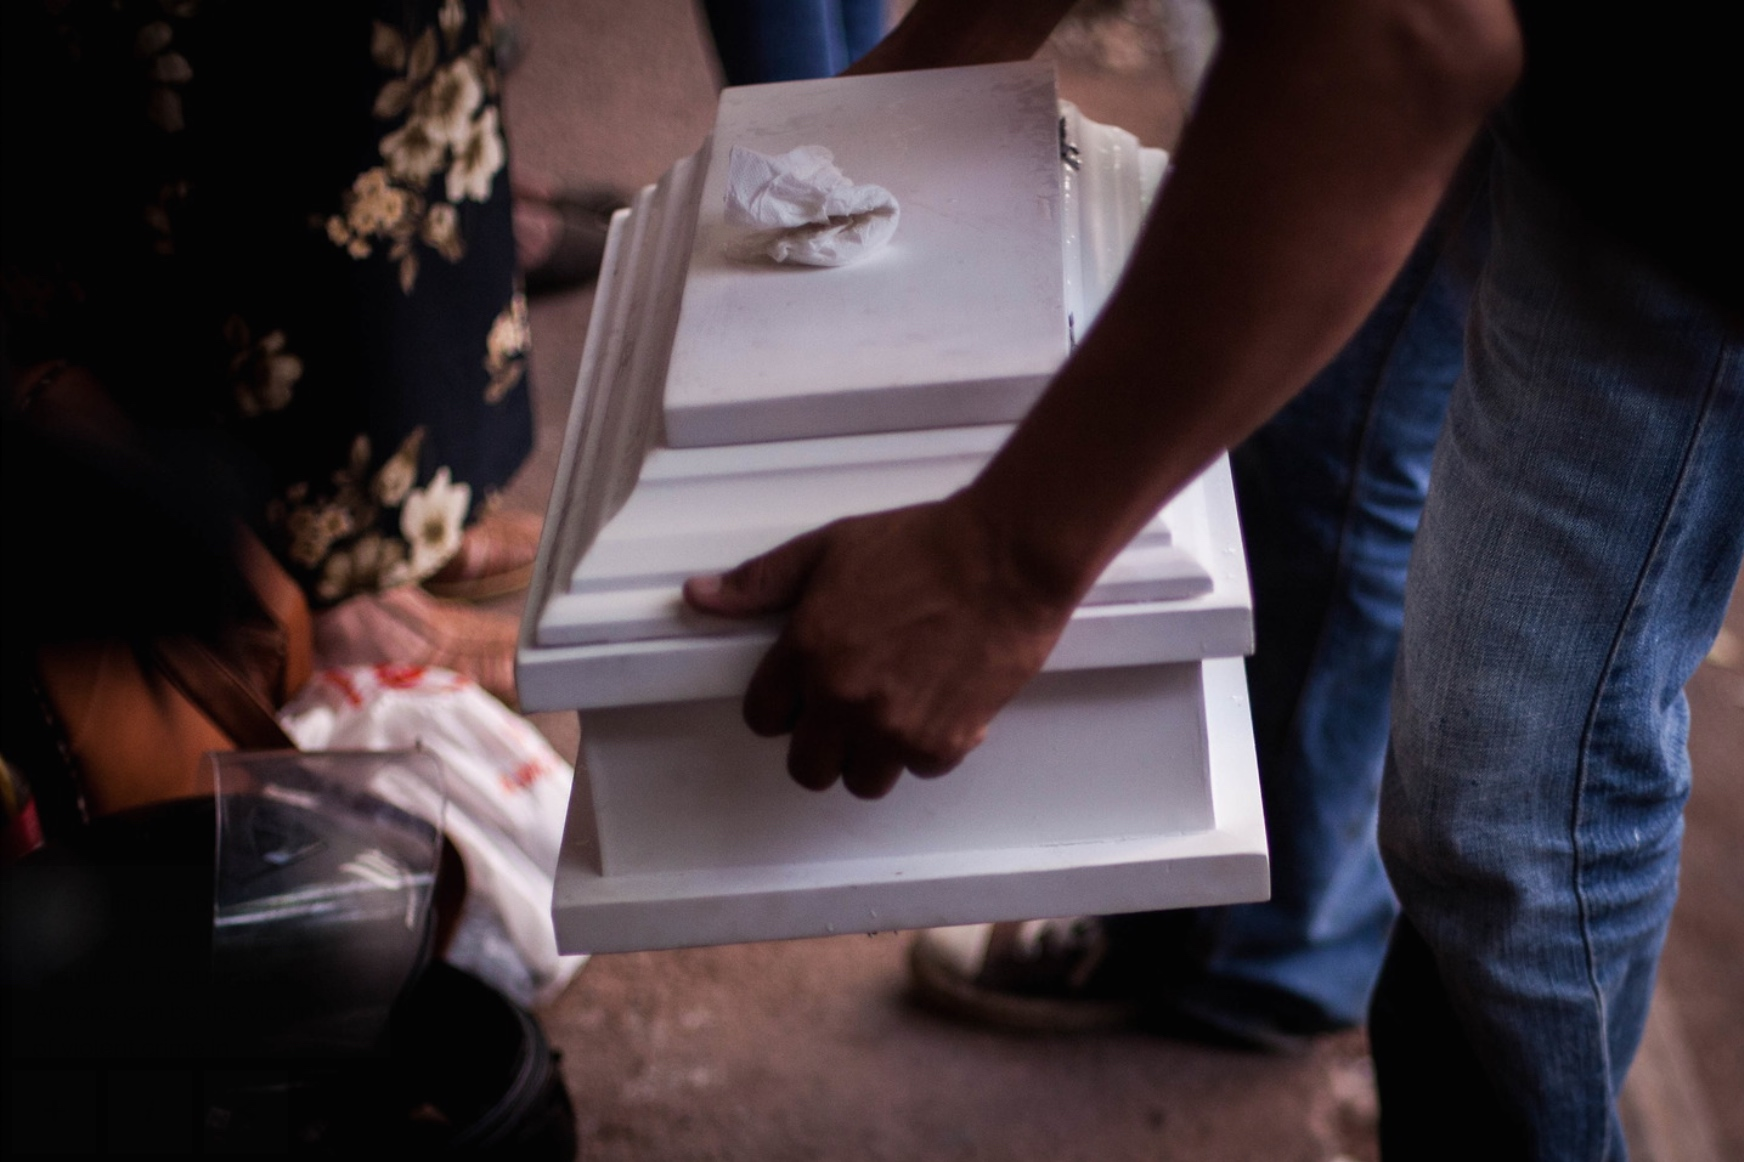 The coffin of a baby is removed from the forensic morgue in Tegucigalpa. 11th August 2017.